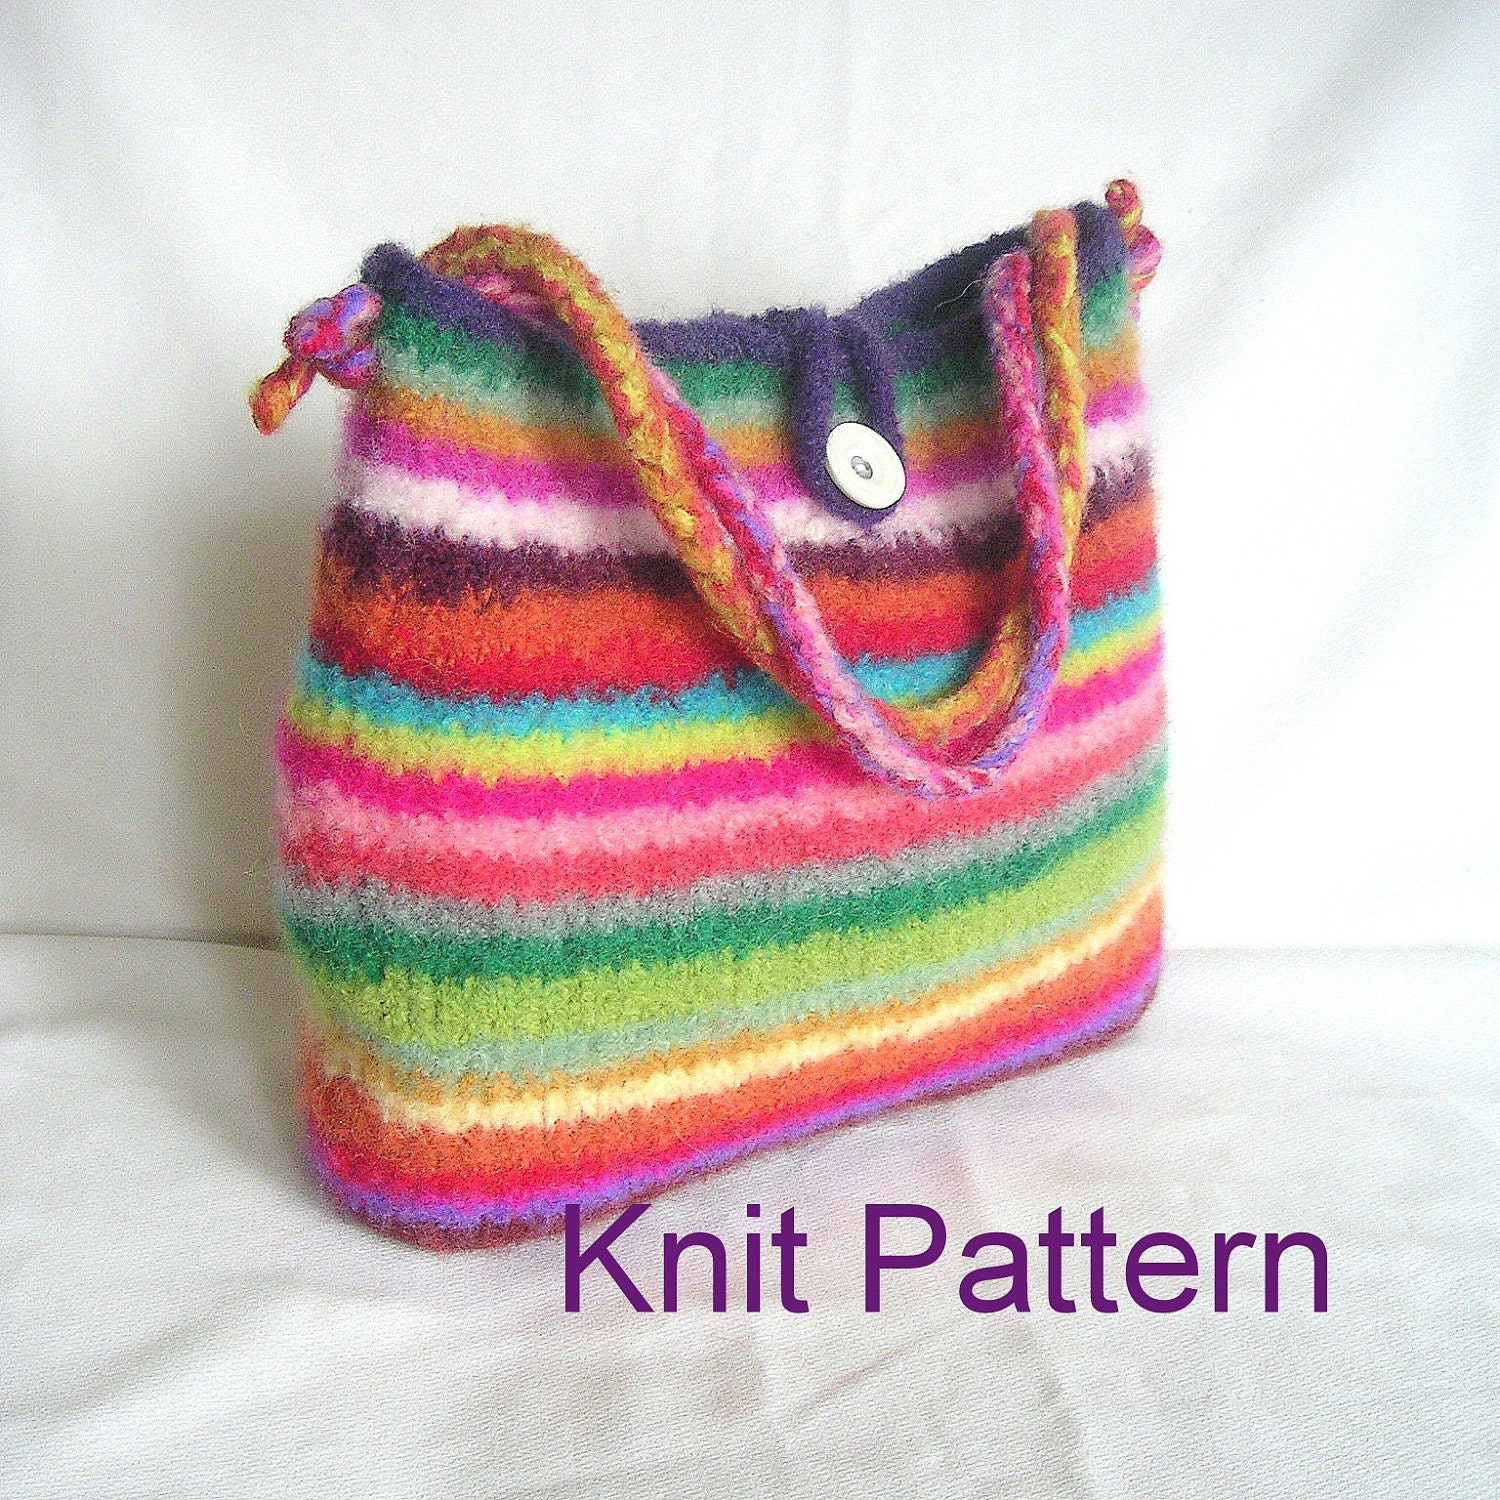 Knitting Pattern Felted Bag : Items similar to Knitting Pattern, Easy Felted Bag Knitting Pattern Tutorial ...